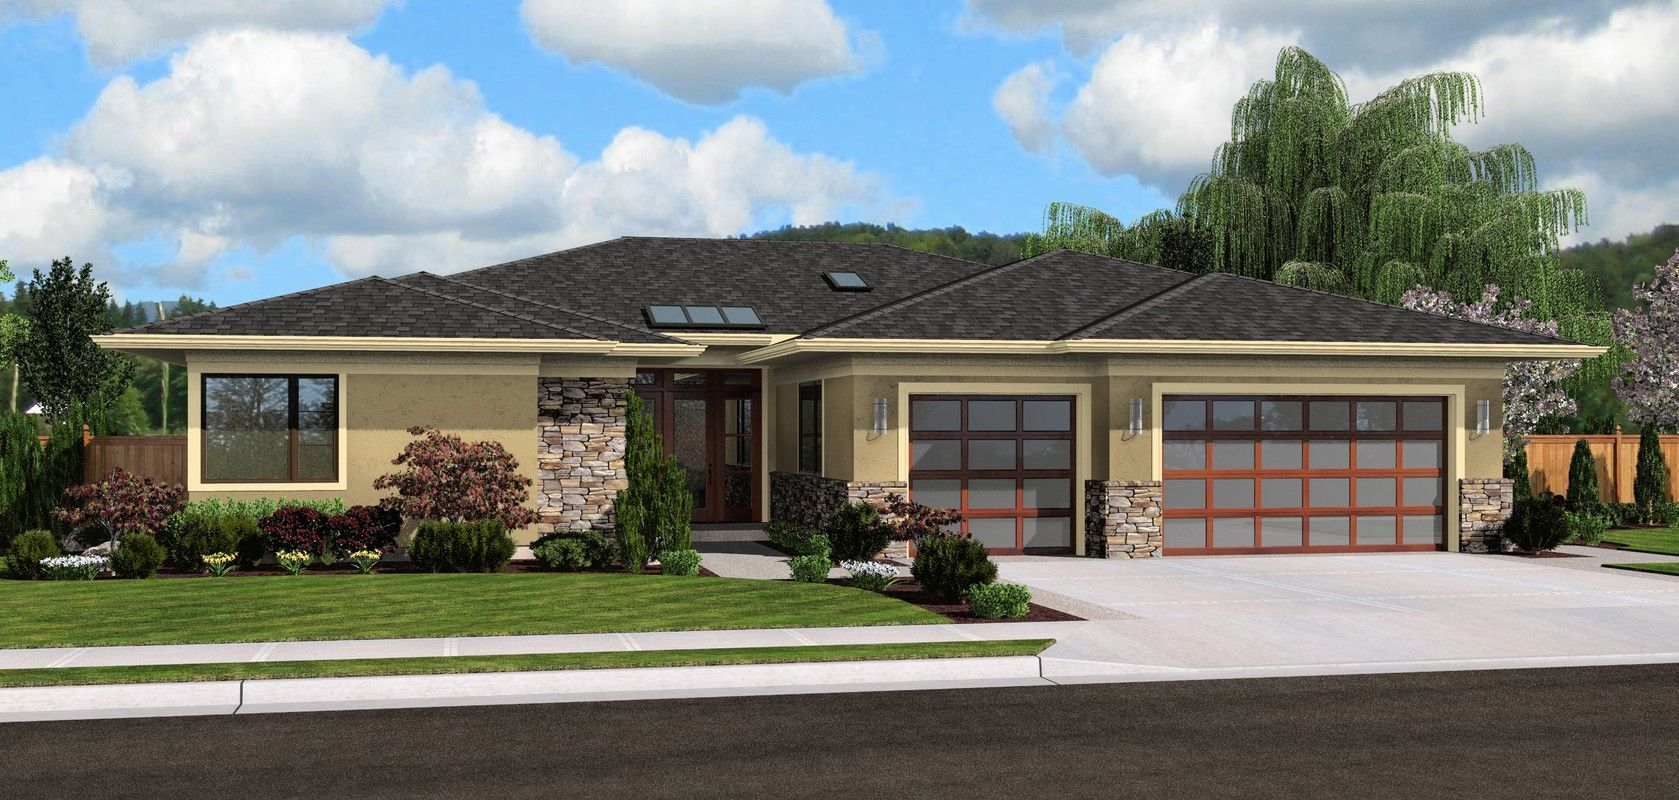 Mascord plan 1245 the riverside hoodriver homes for Contemporary ranch style house plans